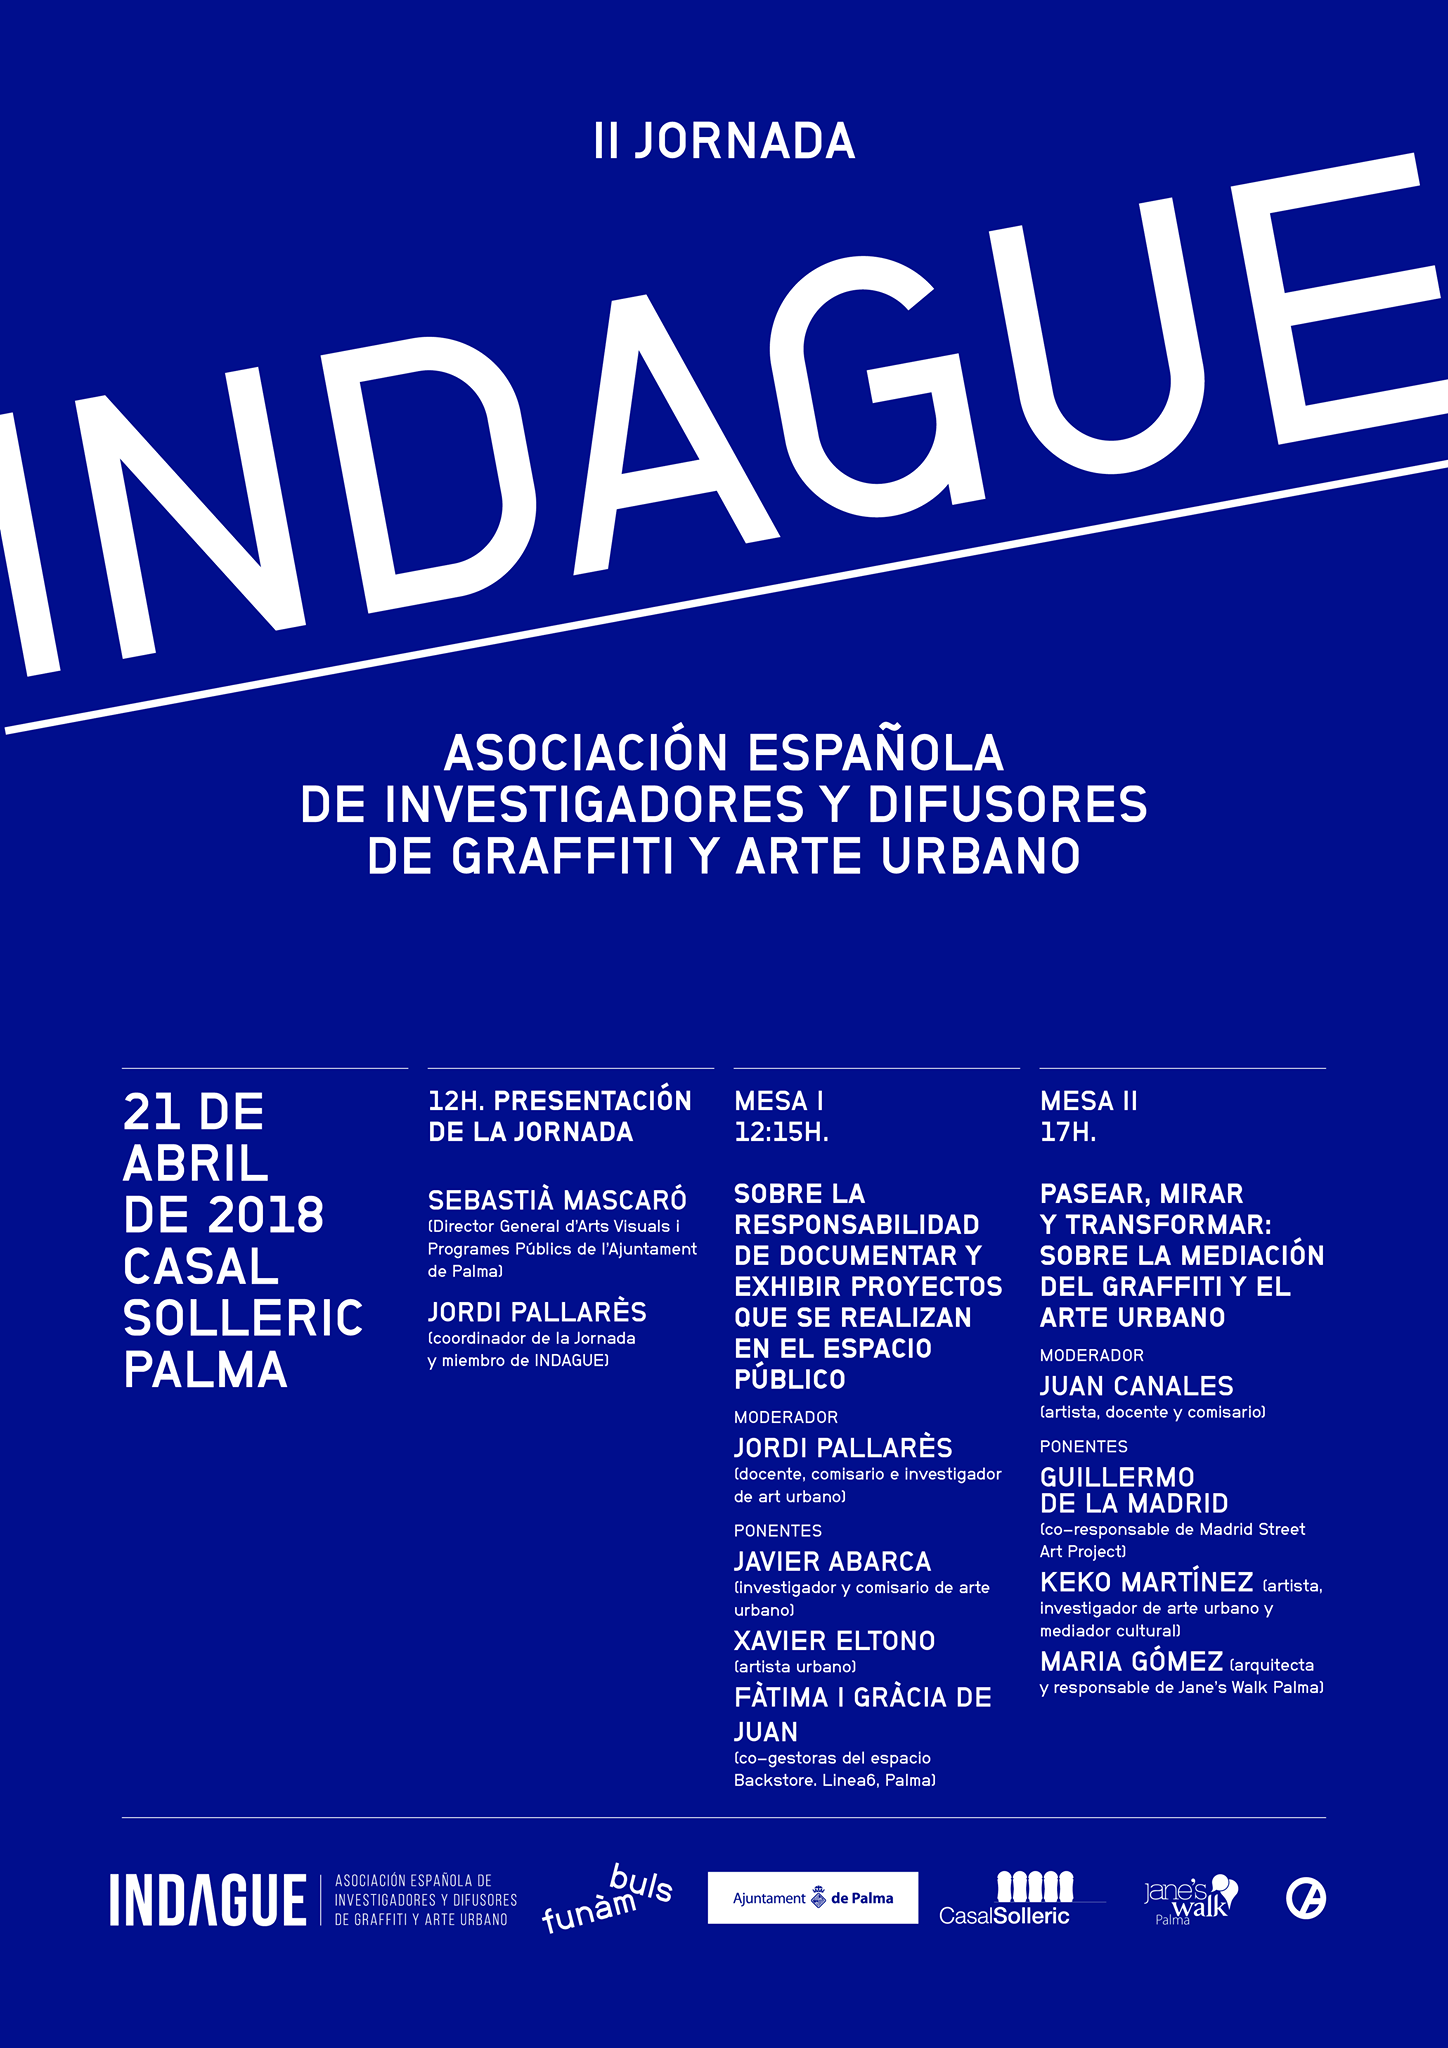 II jornada indague 2018